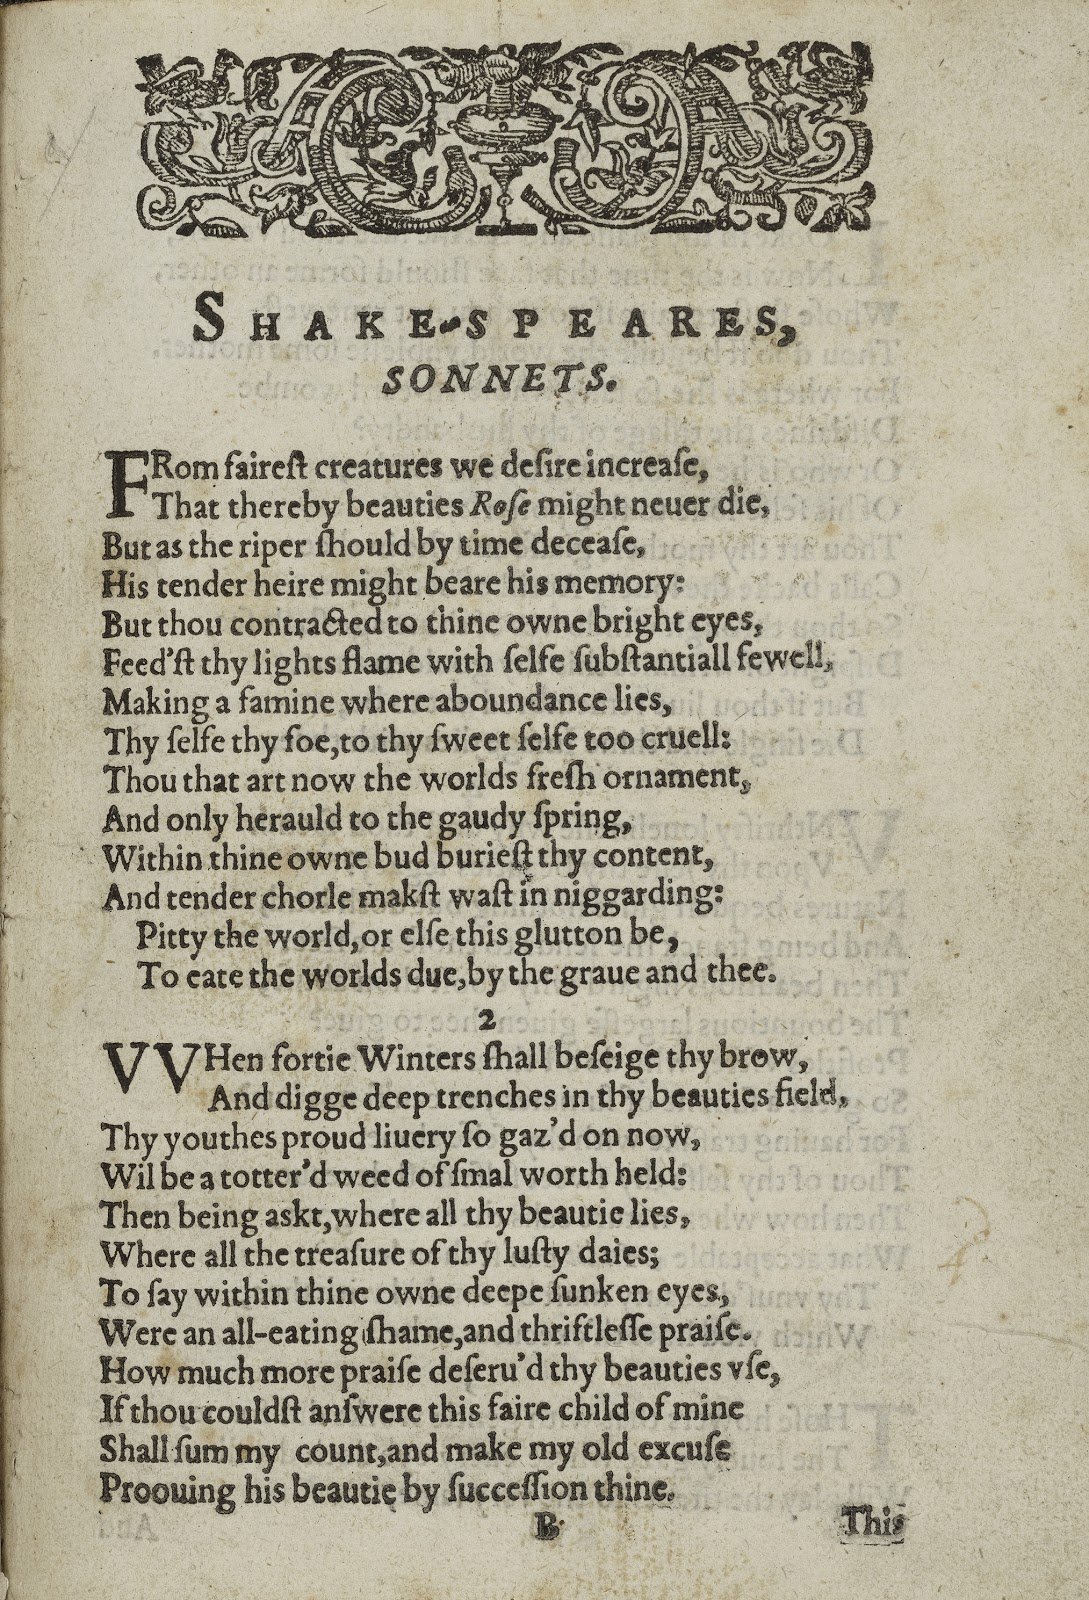 sonnets of shakespear The sonnets [william shakespeare] on amazoncom free shipping on qualifying offers shakespeare's sonnets is the title of a collection of 154 sonnets by william.